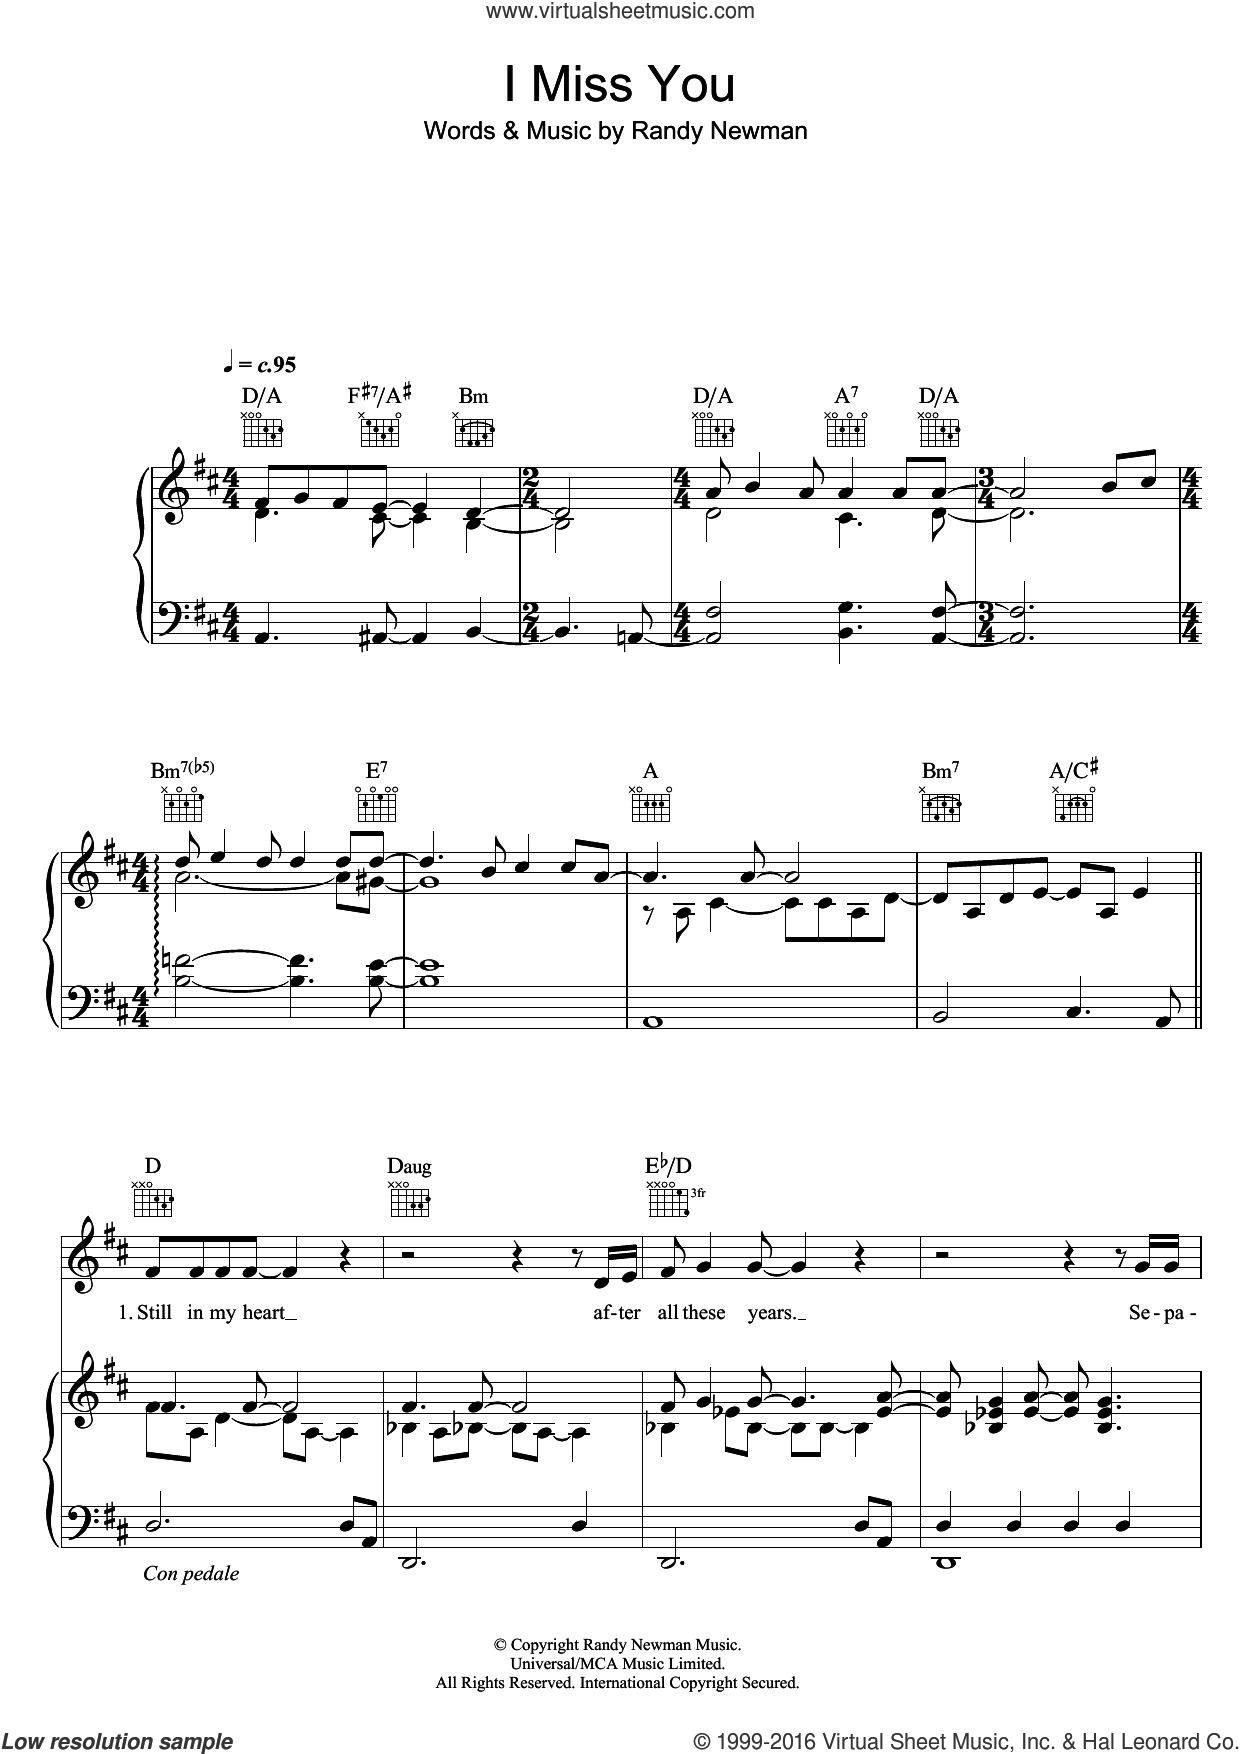 I Miss You sheet music for voice, piano or guitar by Randy Newman. Score Image Preview.